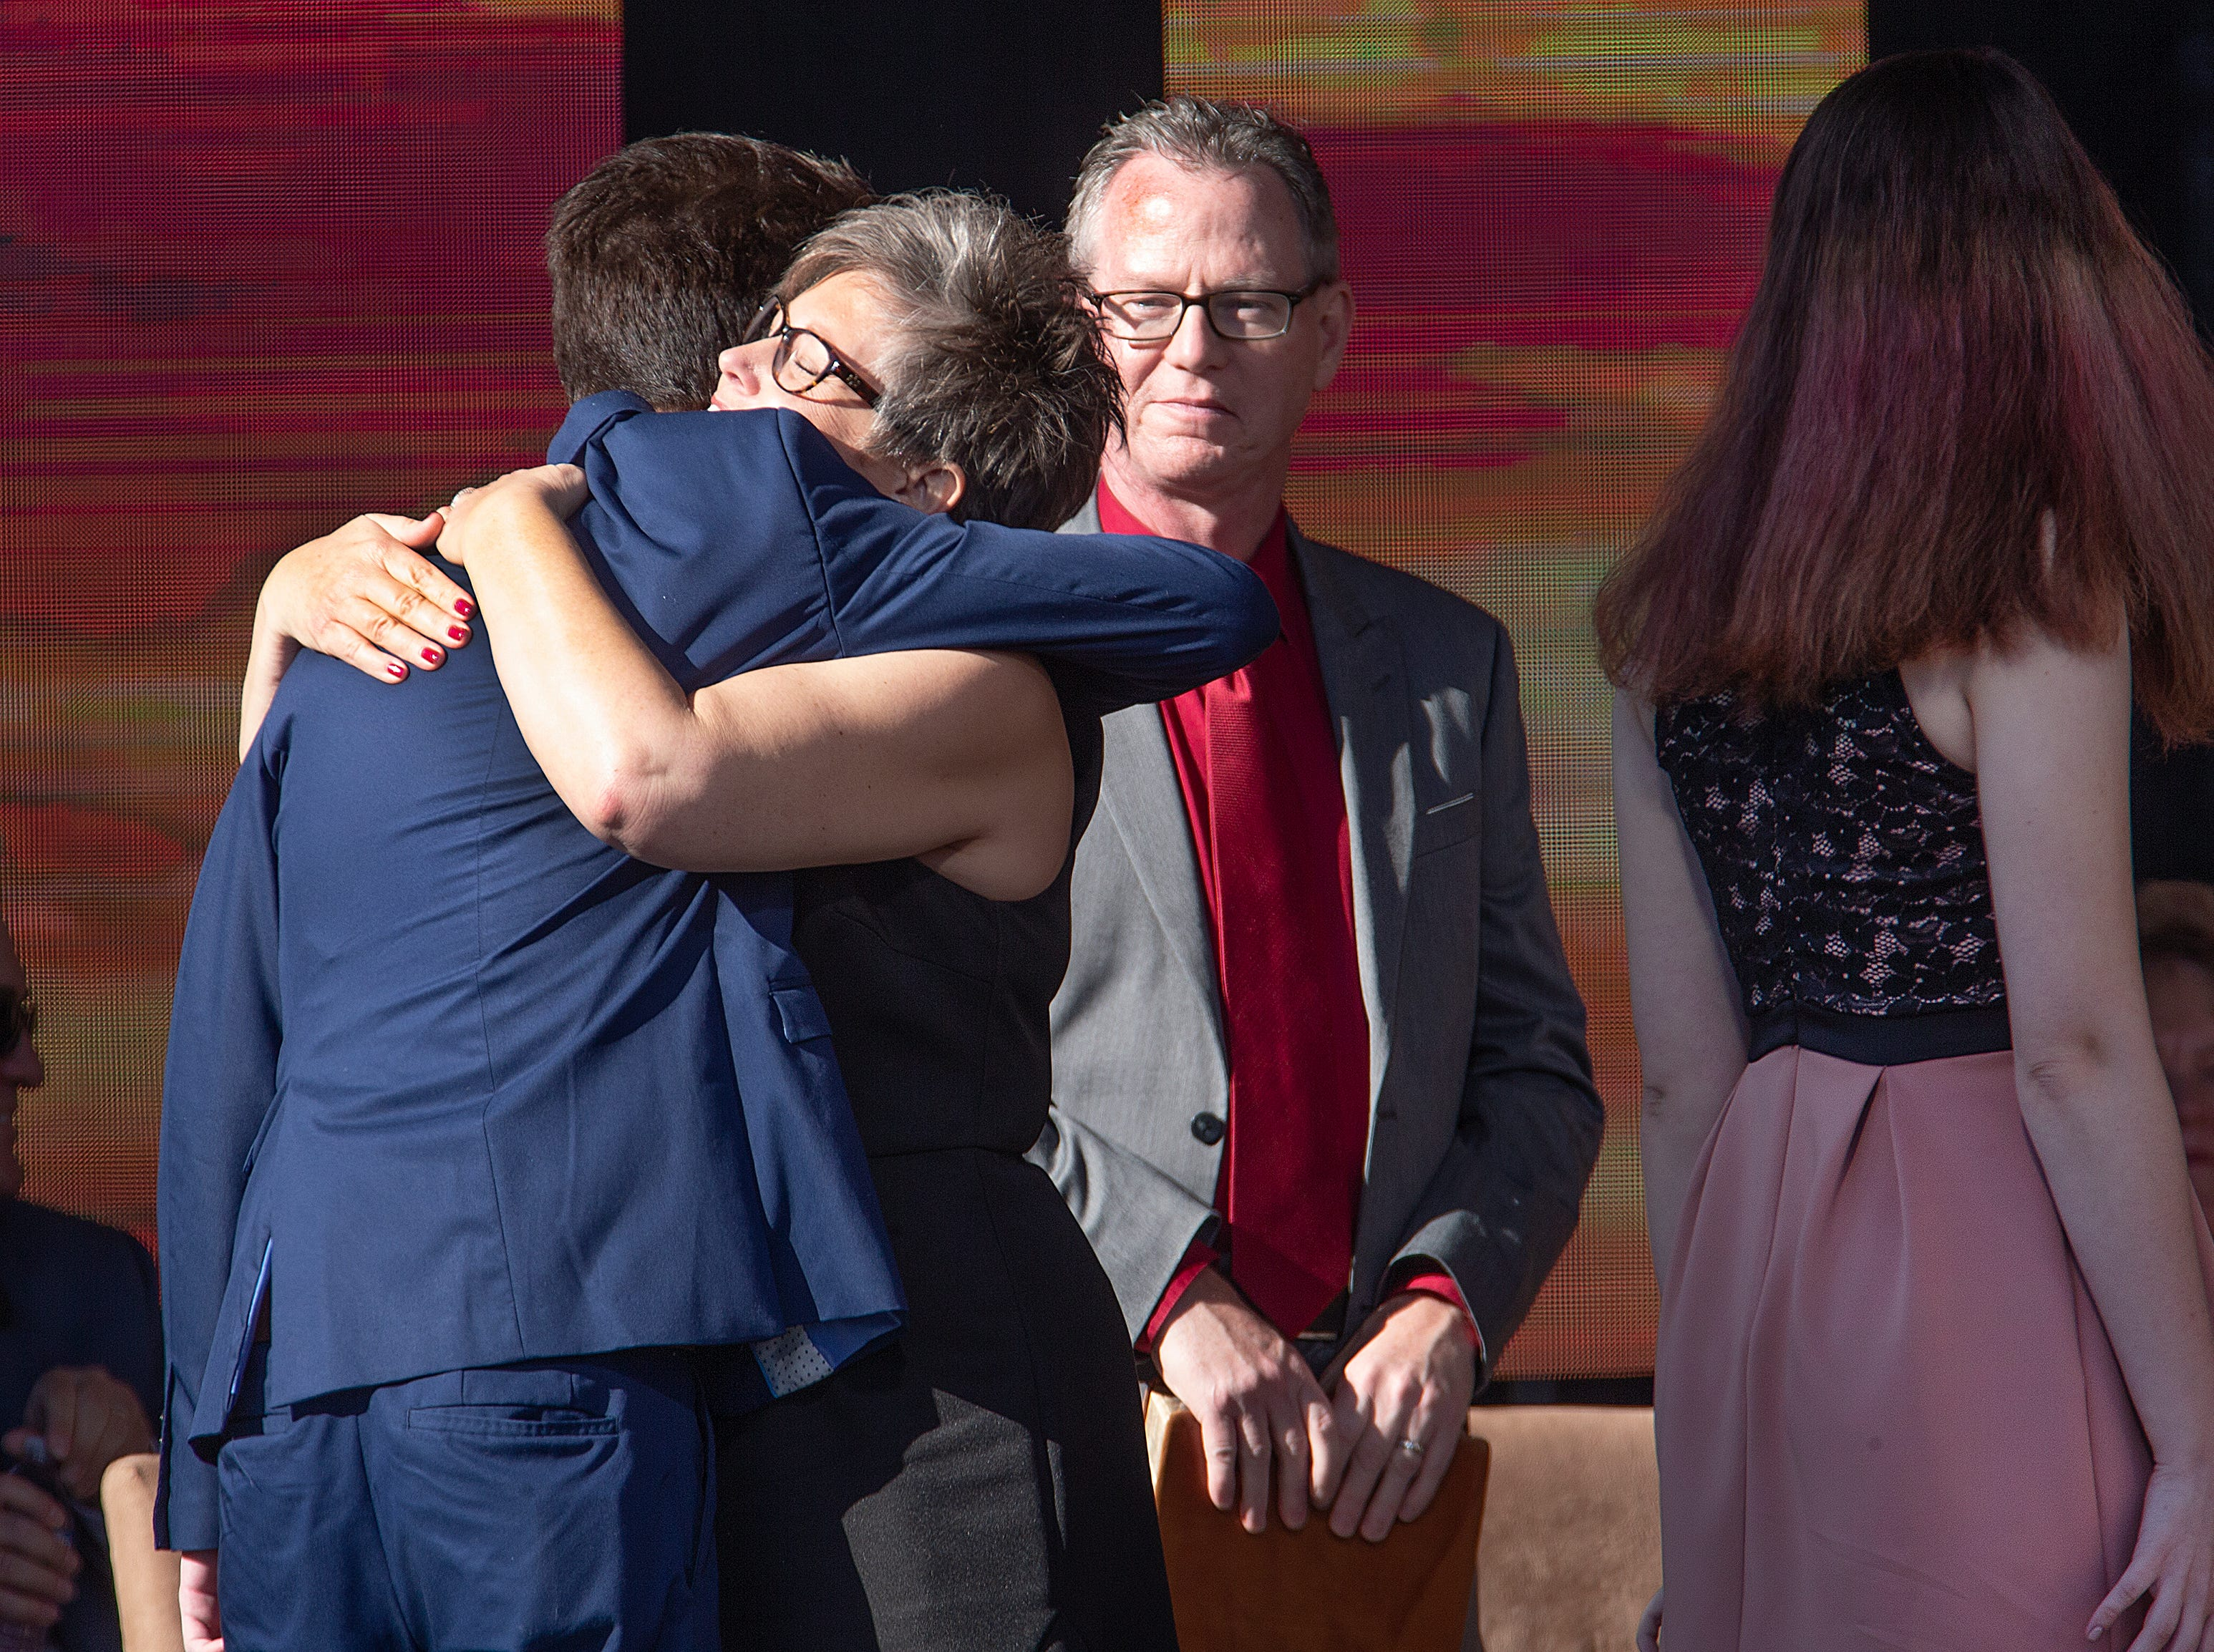 Katie Hobbs hugs family after being sworn in as secretary of state by Arizona Supreme Court Chief Justice Scott Bales at the Arizona Capitol in Phoenix at the 2019 State of Arizona Inauguration ceremony on Jan. 7, 2019.  Gov. Doug Ducey , Hobbs, Attorney General Mark Brnovich, State Treasurer Kimberly Yee, Superintendent of Public Instruction Kathy Hoffman and State Mine Inspector Joe Hart were all sworn in to office during the ceremony.